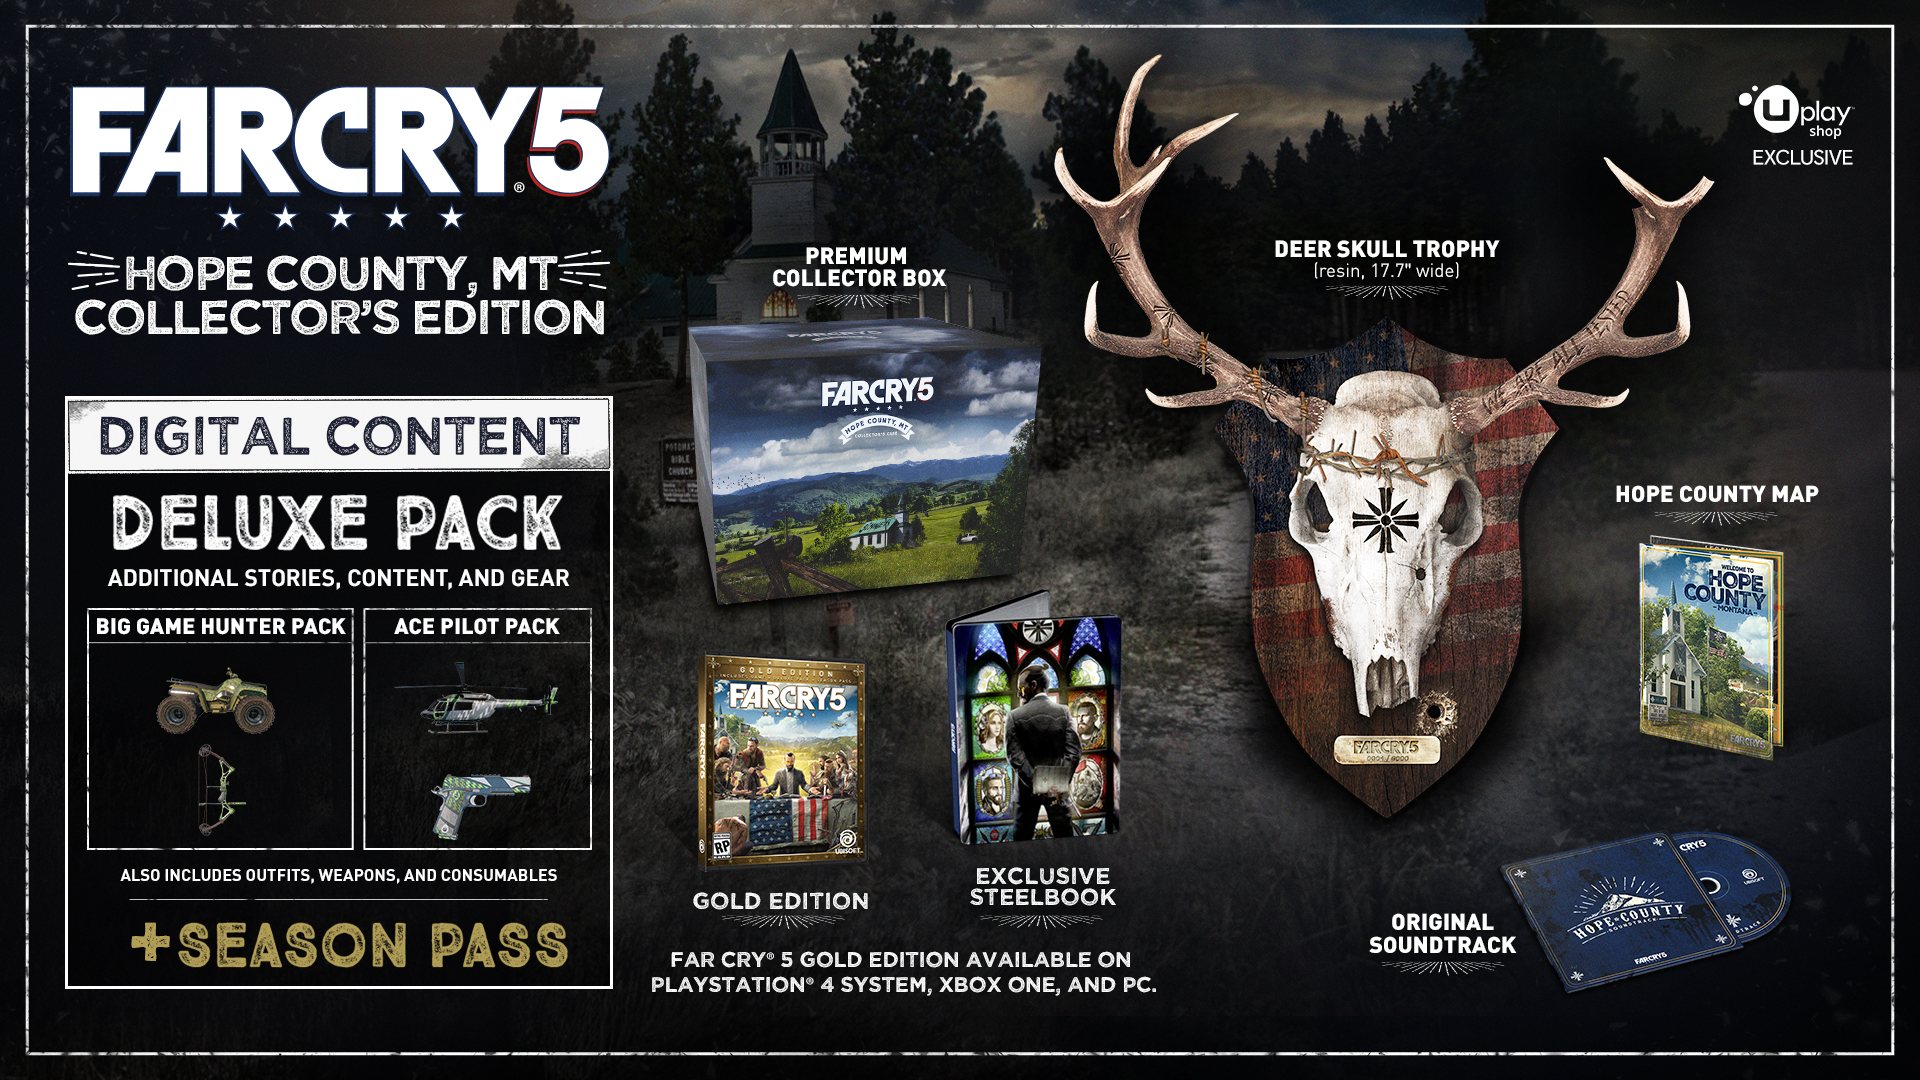 Buy far cry 5 hope county edition for ps4 xbox one and pc for Xbox one hunting and fishing games